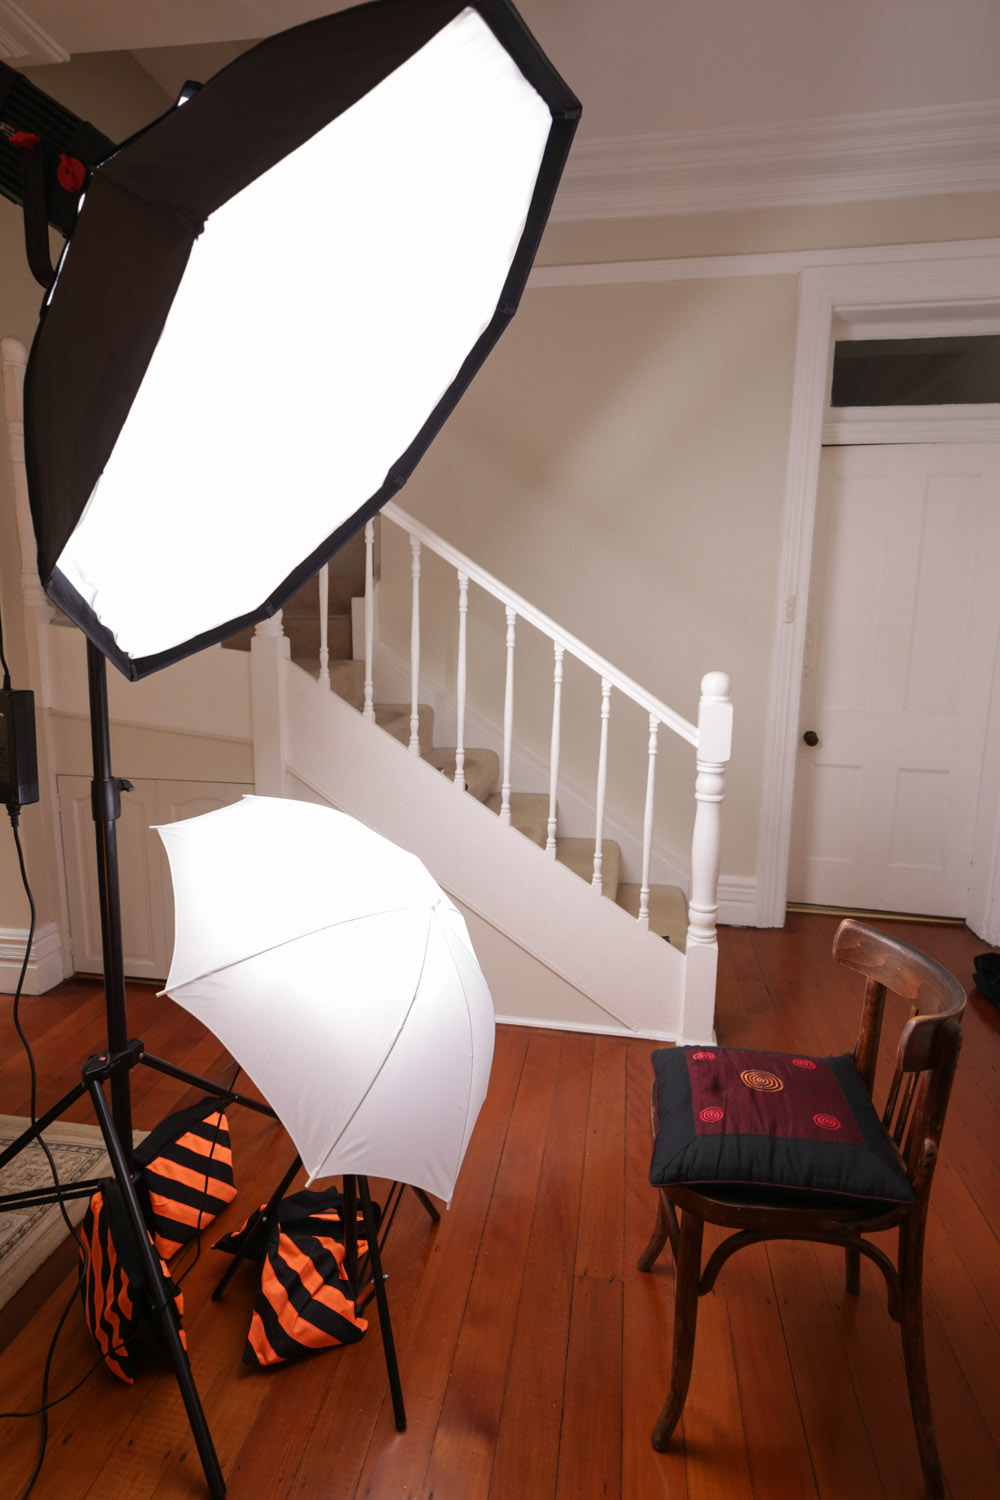 Image: The clamshell is a simple setup and can be achieved with just one key light and a reflector t...